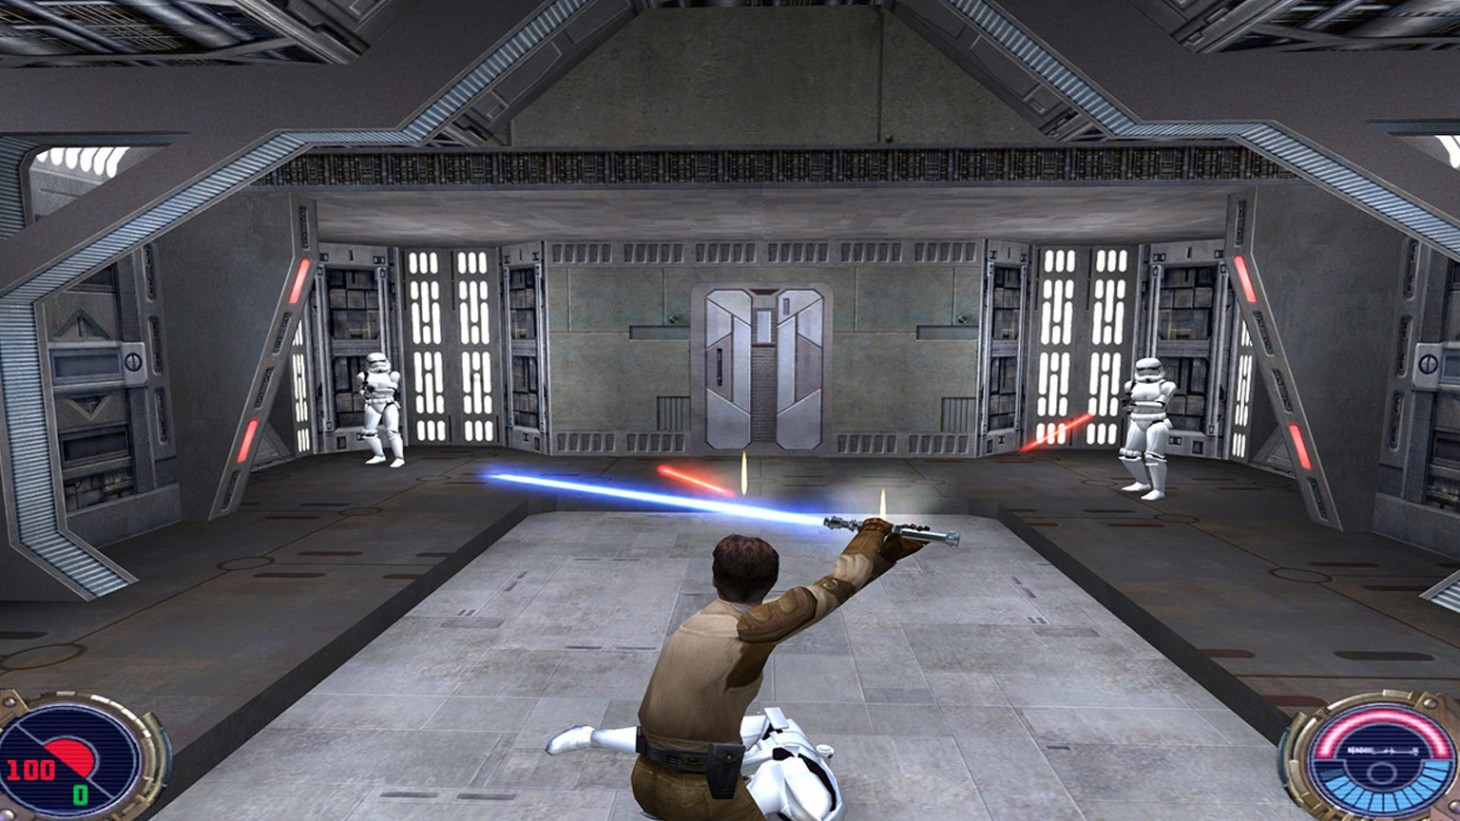 Jedi Knight Game Ports will soon be on PlayStation 4 and Nintendo Switch